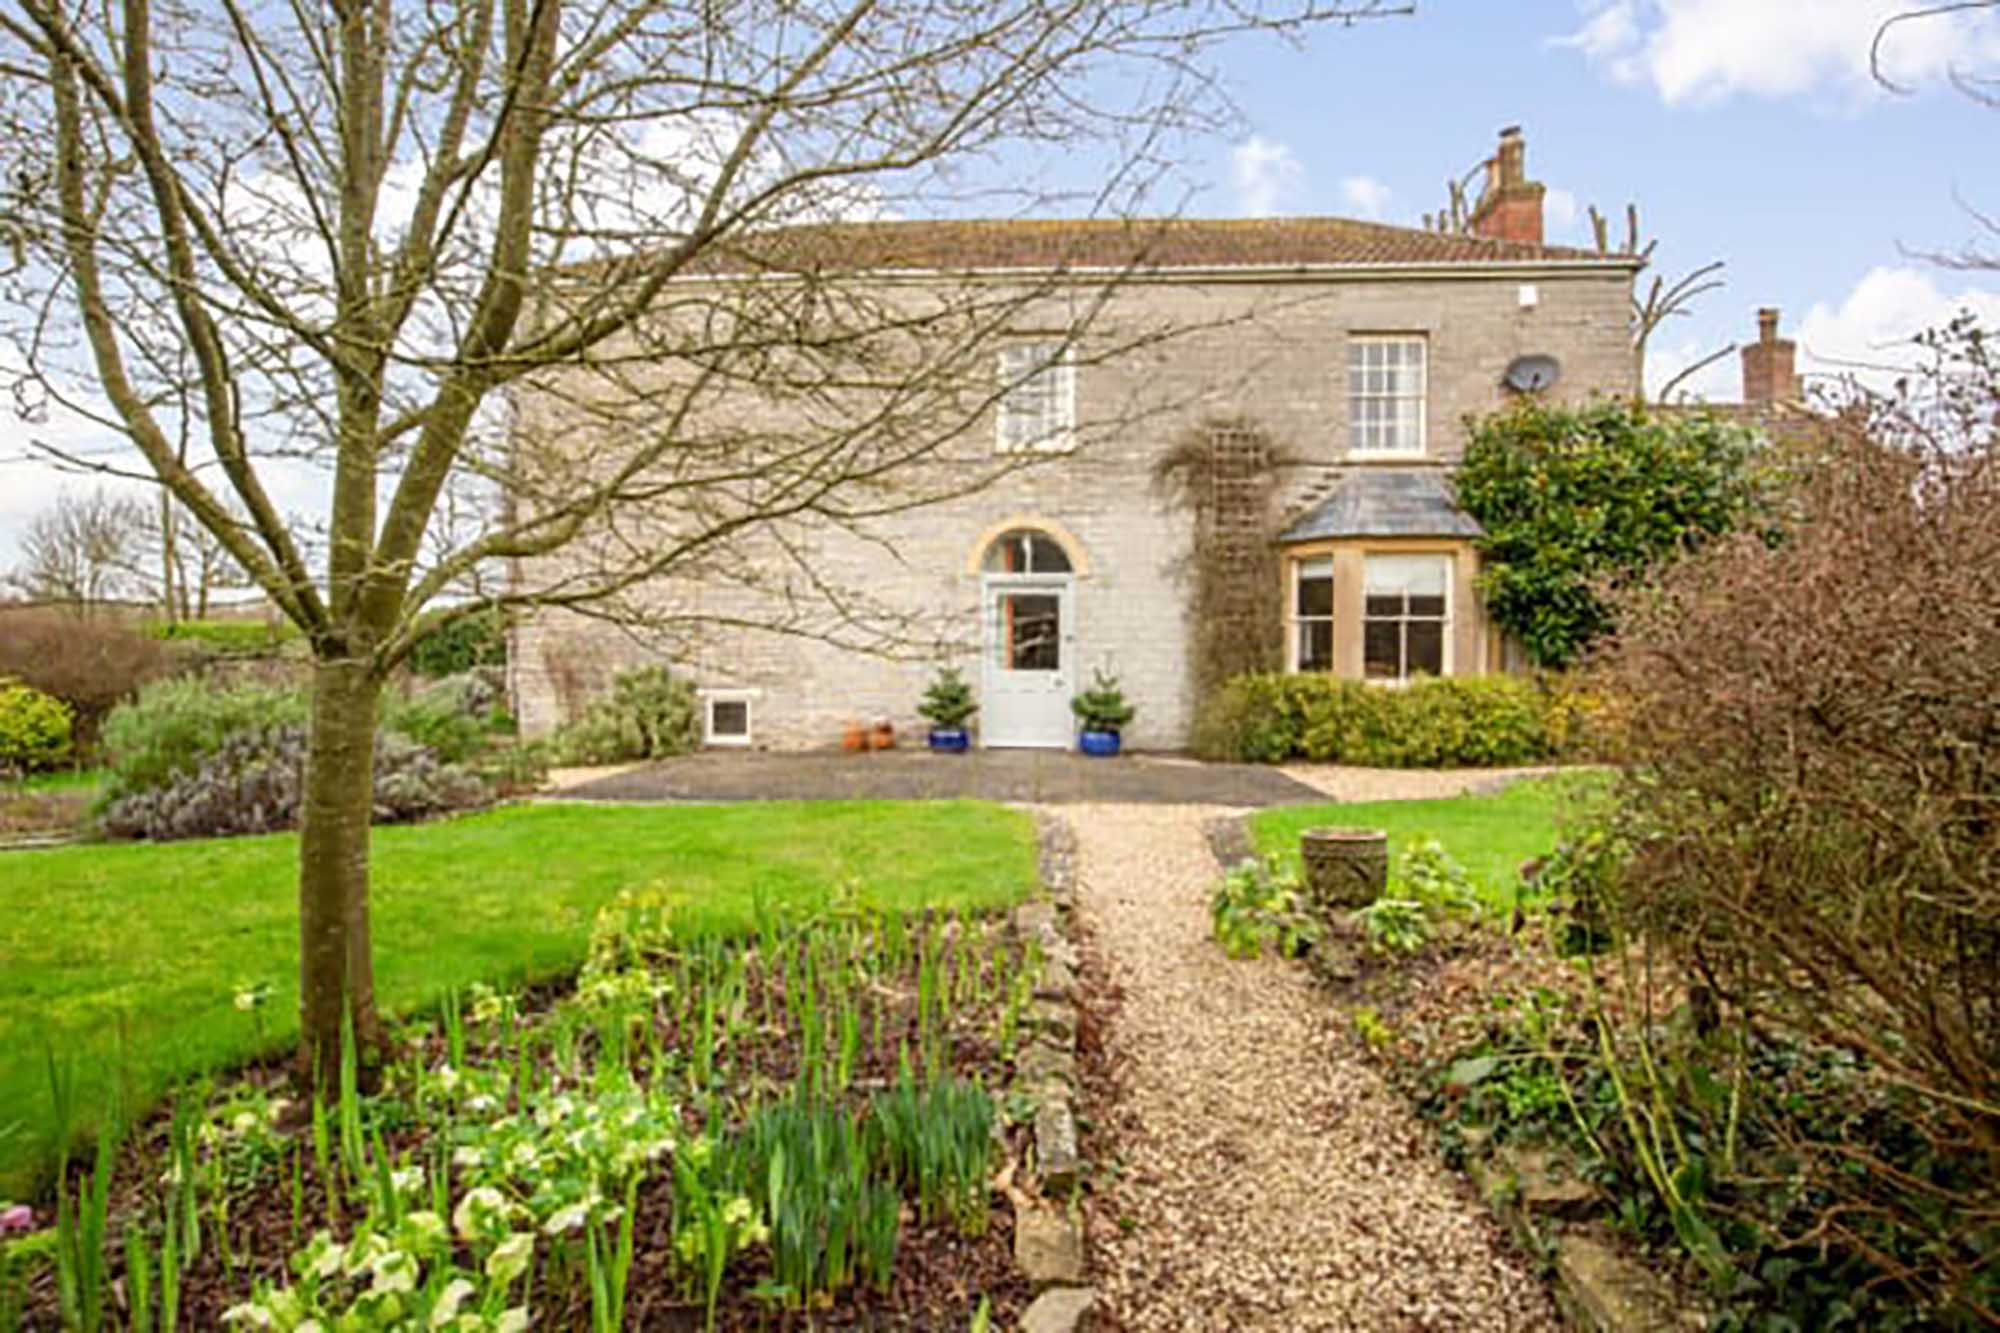 Period family home in desirable village with flexible accommodation